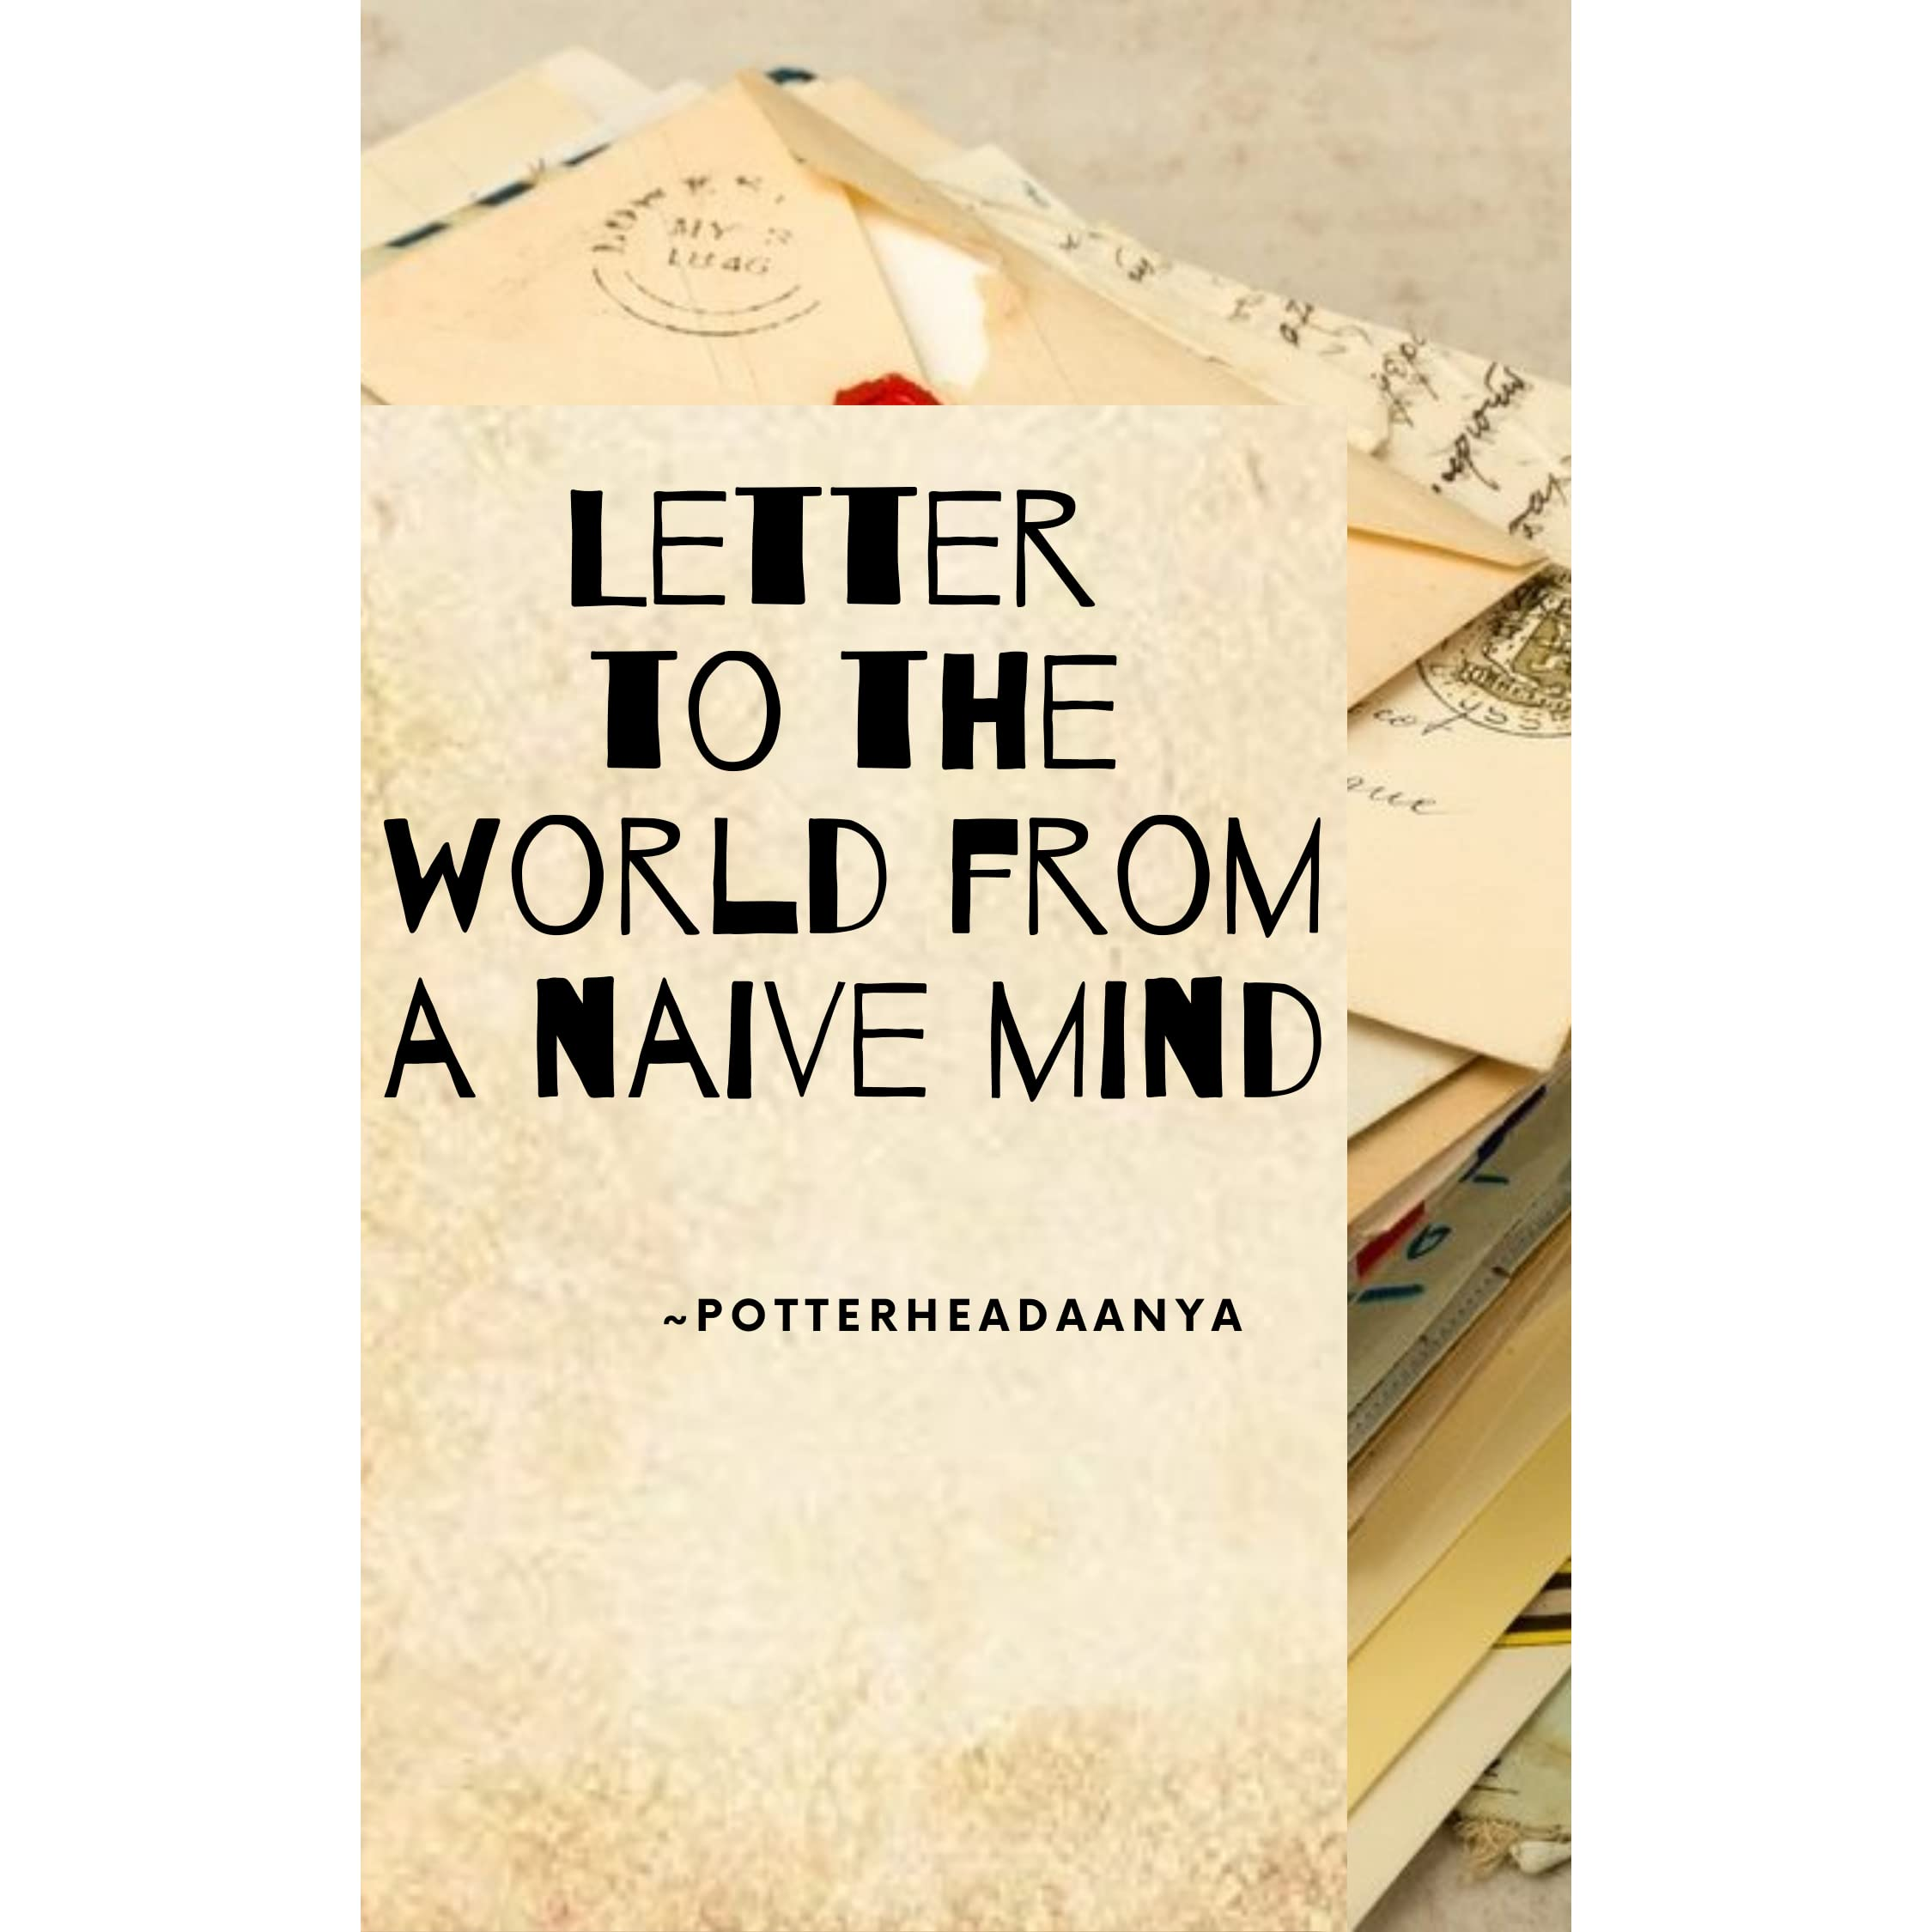 letter to the world from a naive mind by Potterhead Aanya